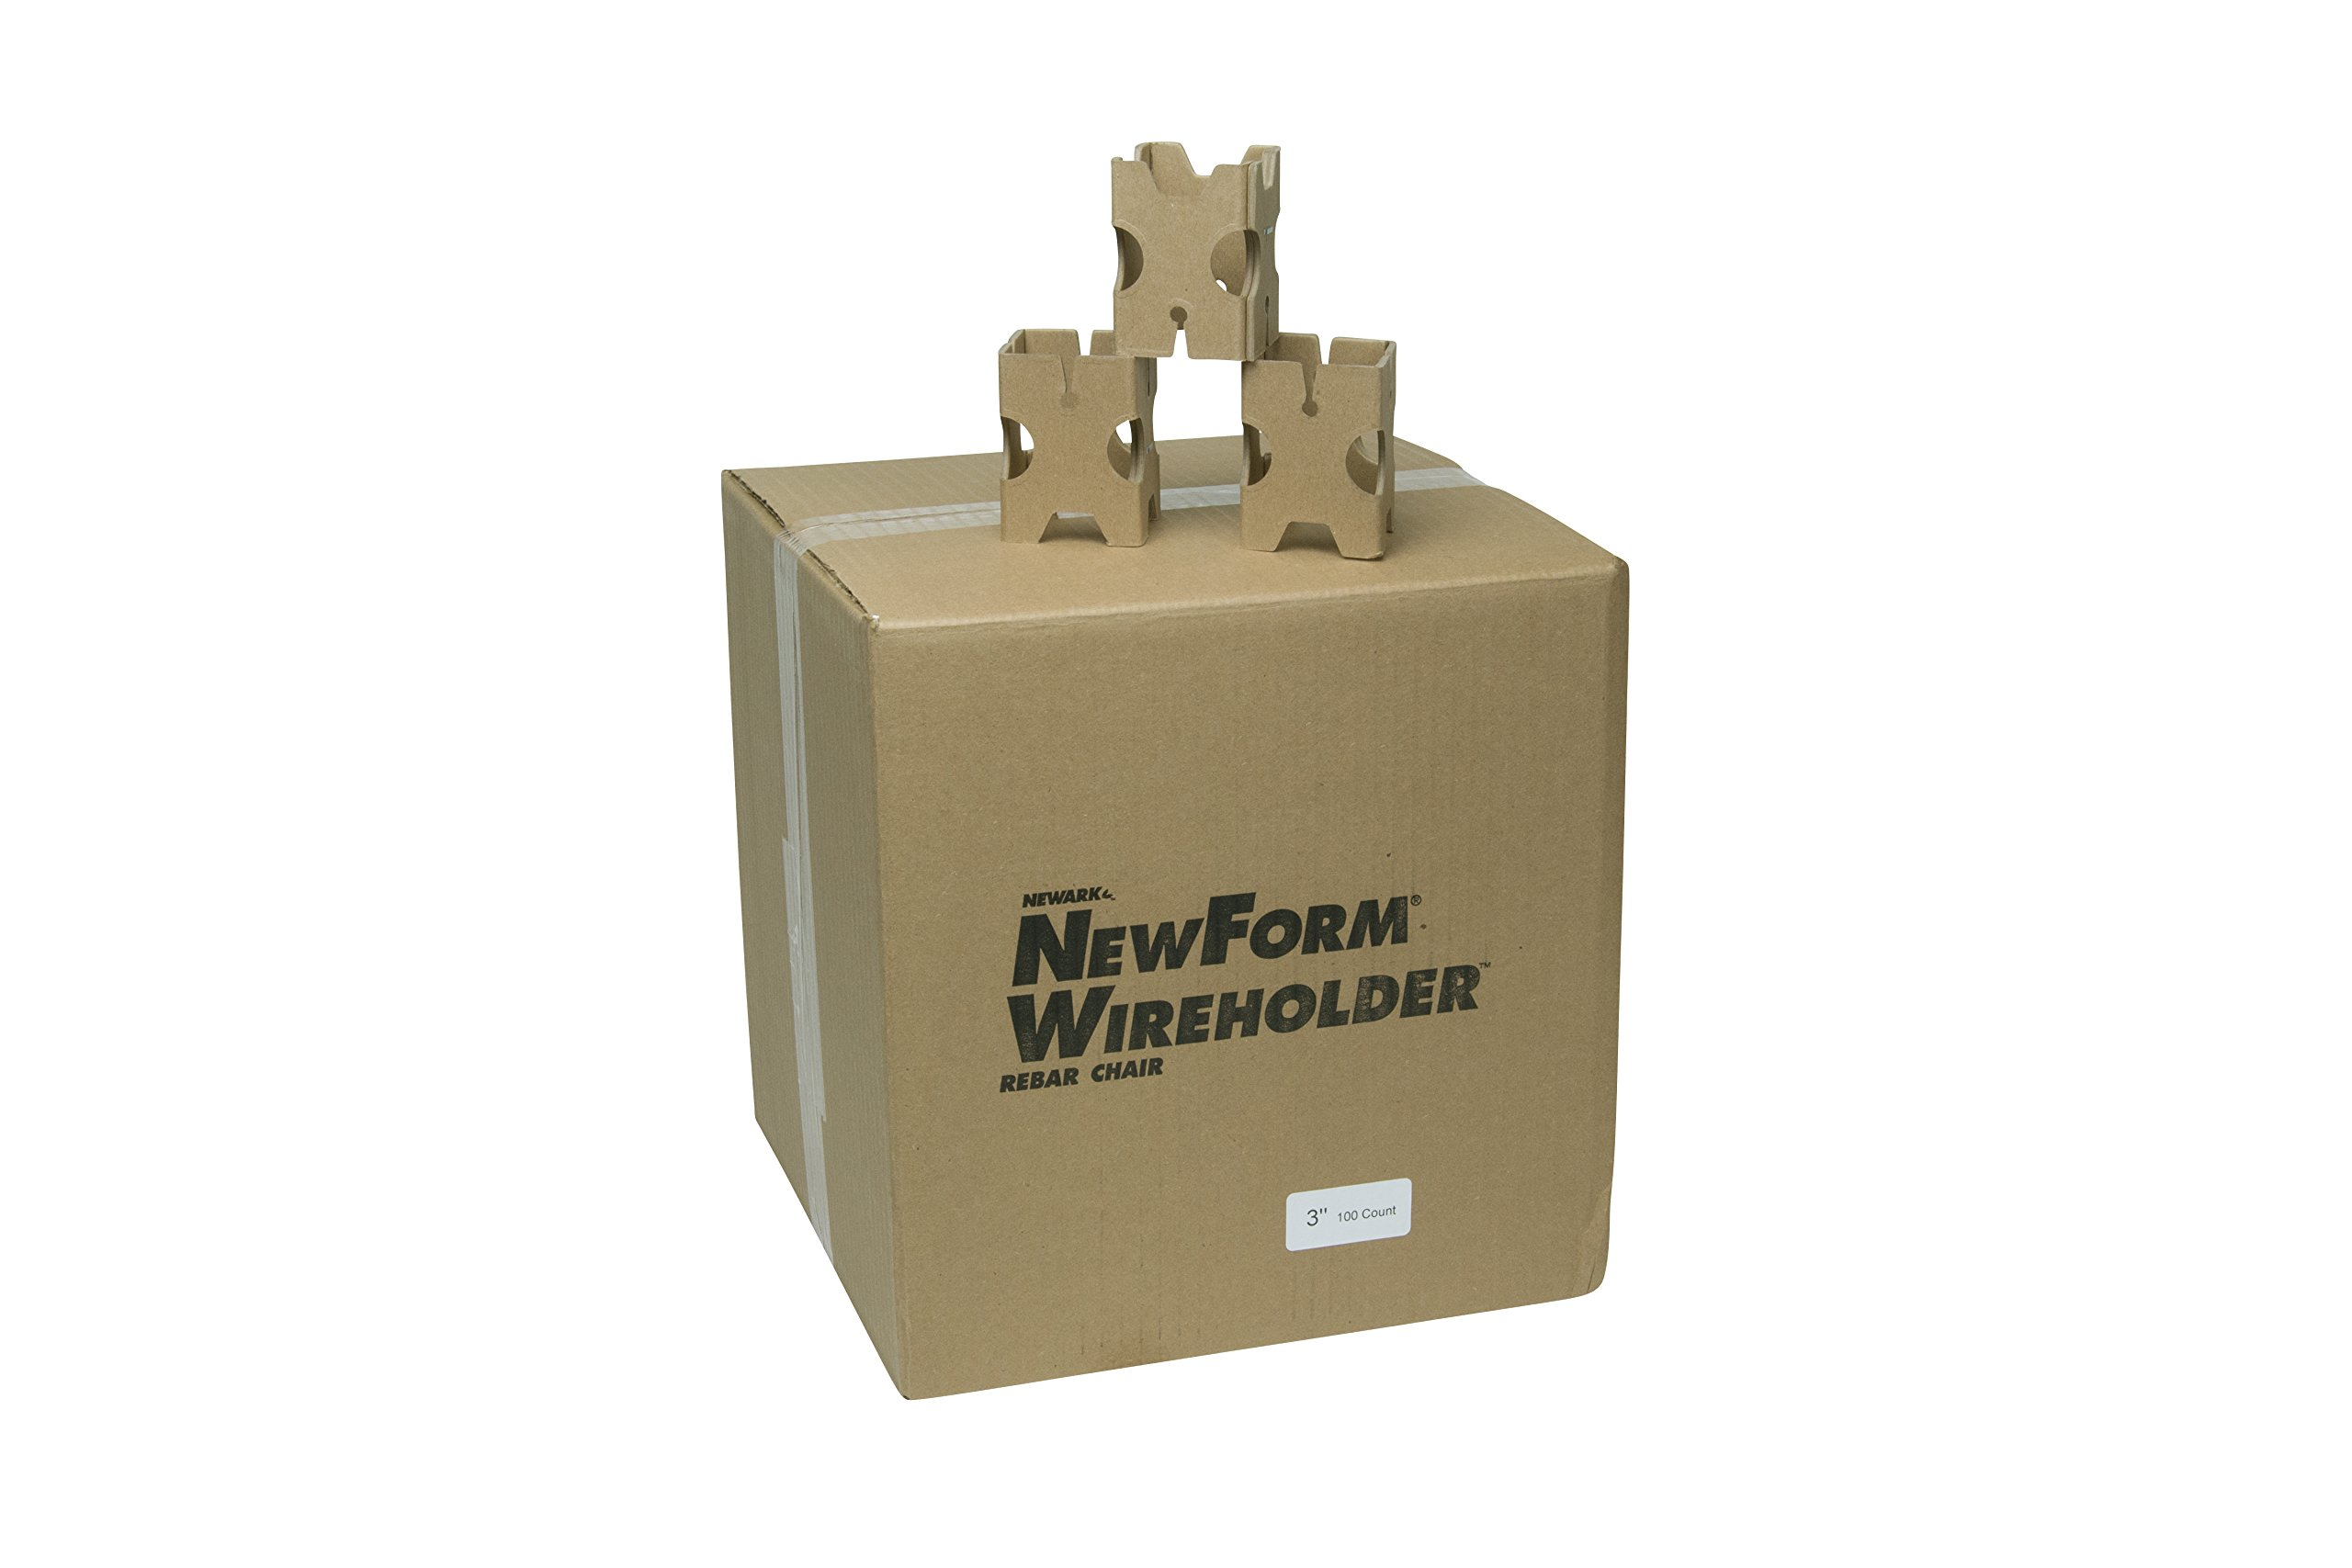 Newark Paperboard 3'' Wireholder Rebar Chairs (Pack of 100)